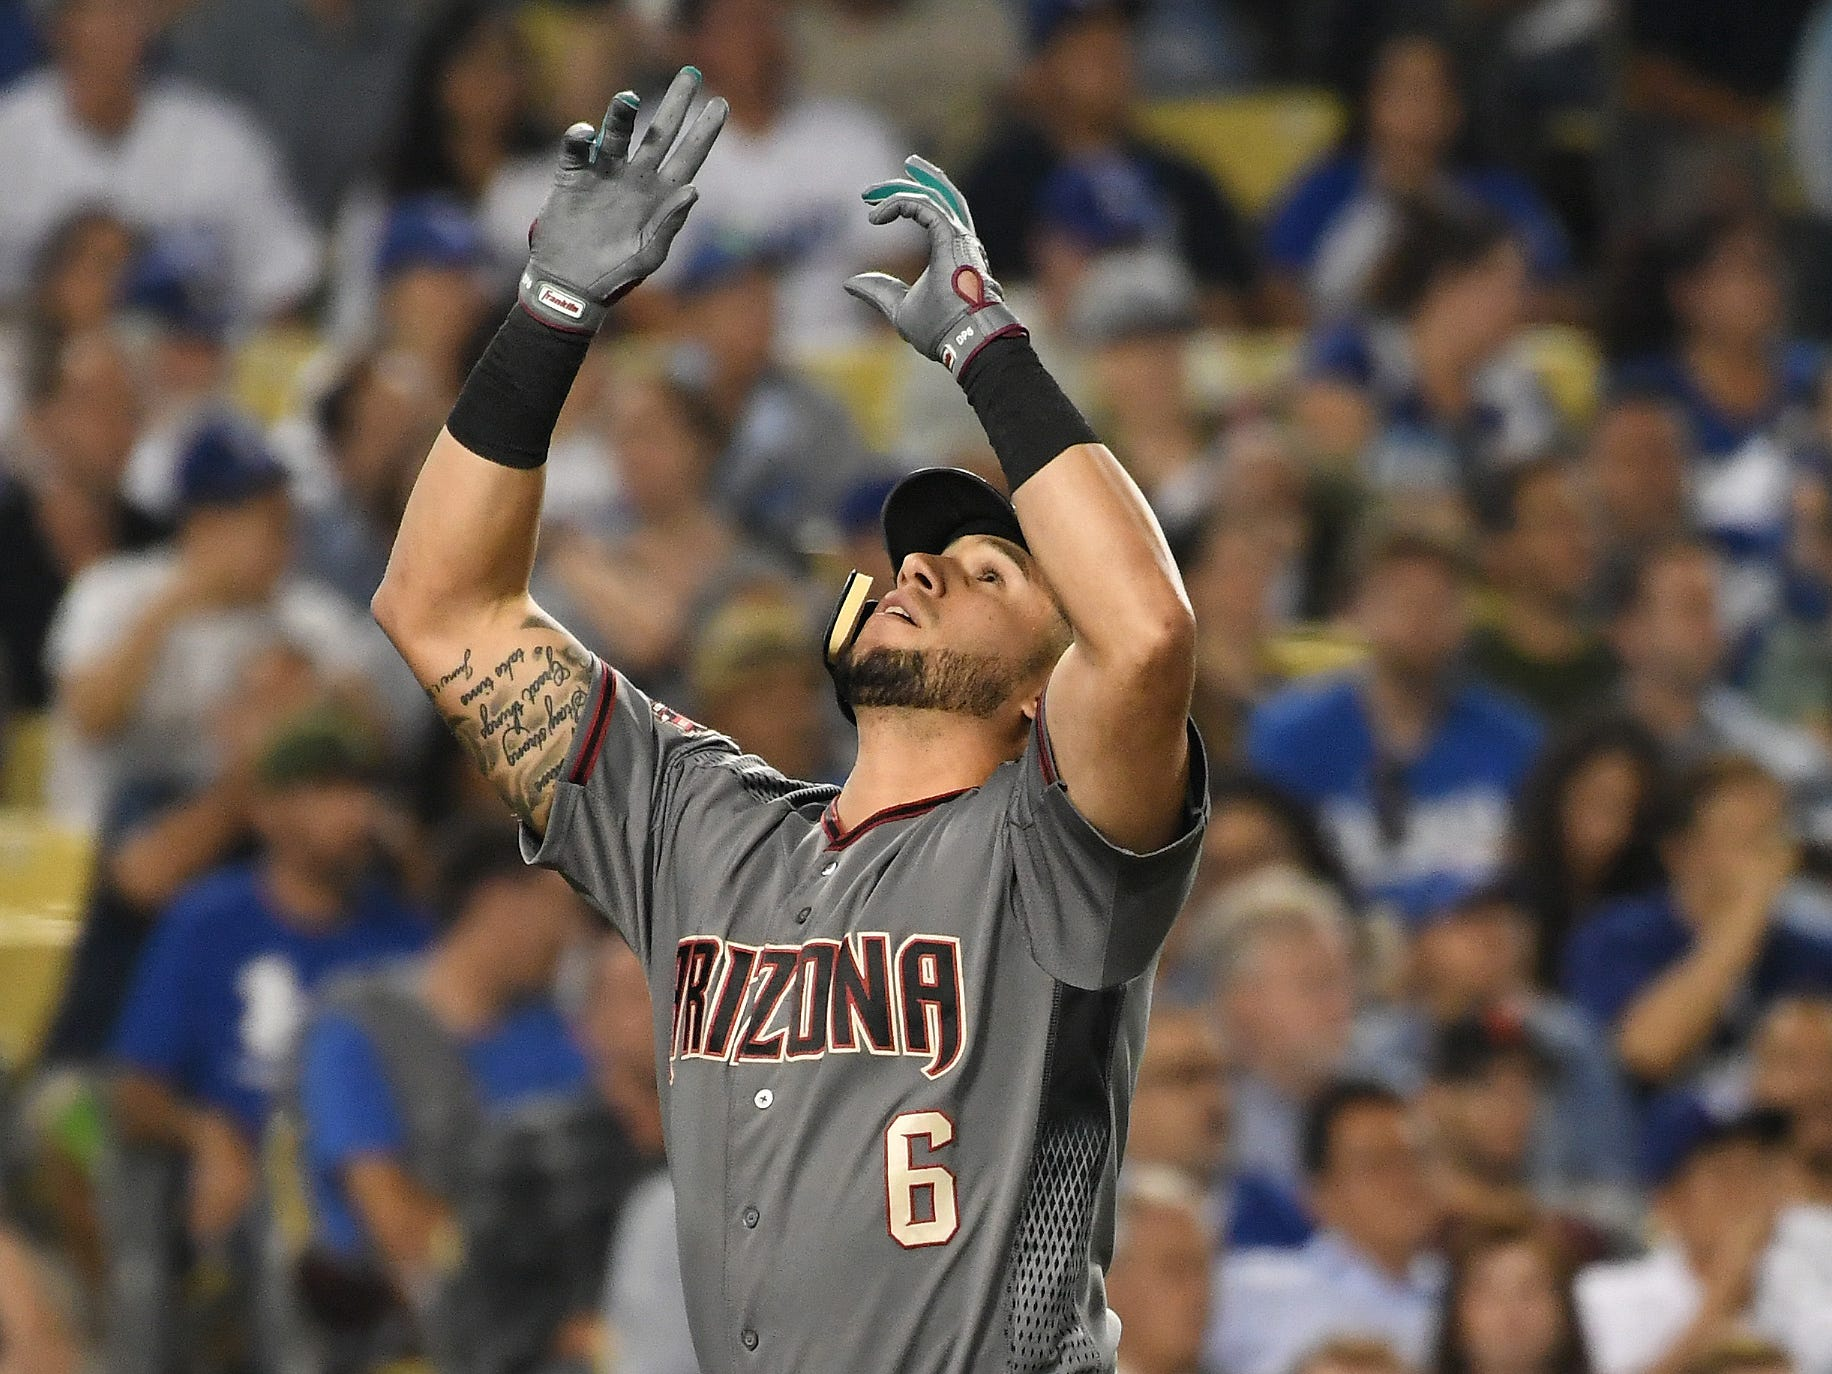 Aug 30, 2018; Los Angeles, CA, USA; Arizona Diamondbacks right fielder David Peralta (6) celebrates hitting a three run home run against the Los Angeles Dodgers in the fifth inning at Dodger Stadium. Mandatory Credit: Richard Mackson-USA TODAY Sports